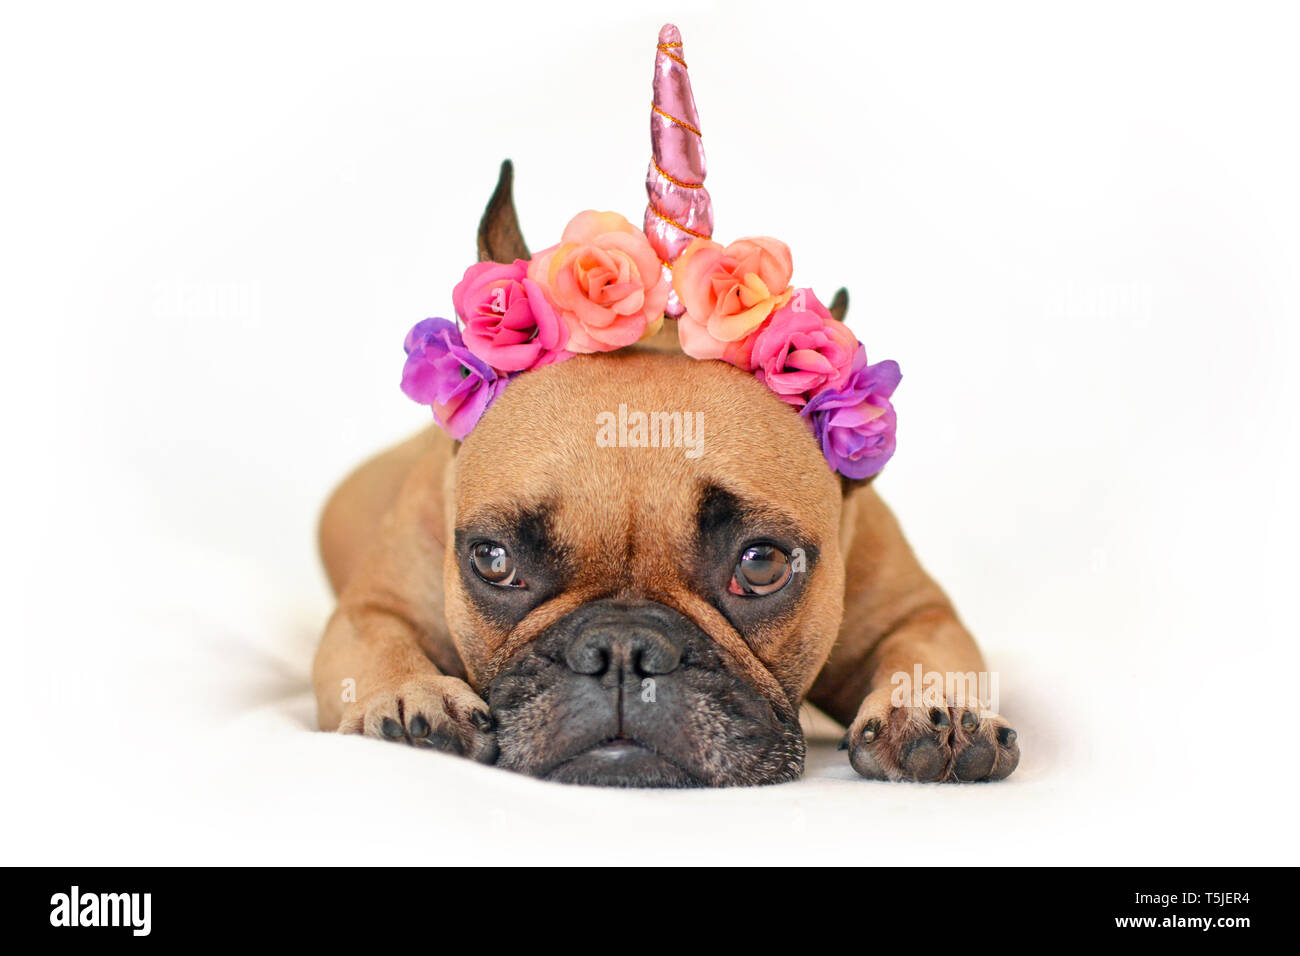 Cute brown French Bulldog dog with pink flower and unicorn horn headband lying on ground in front of white studio background Stock Photo